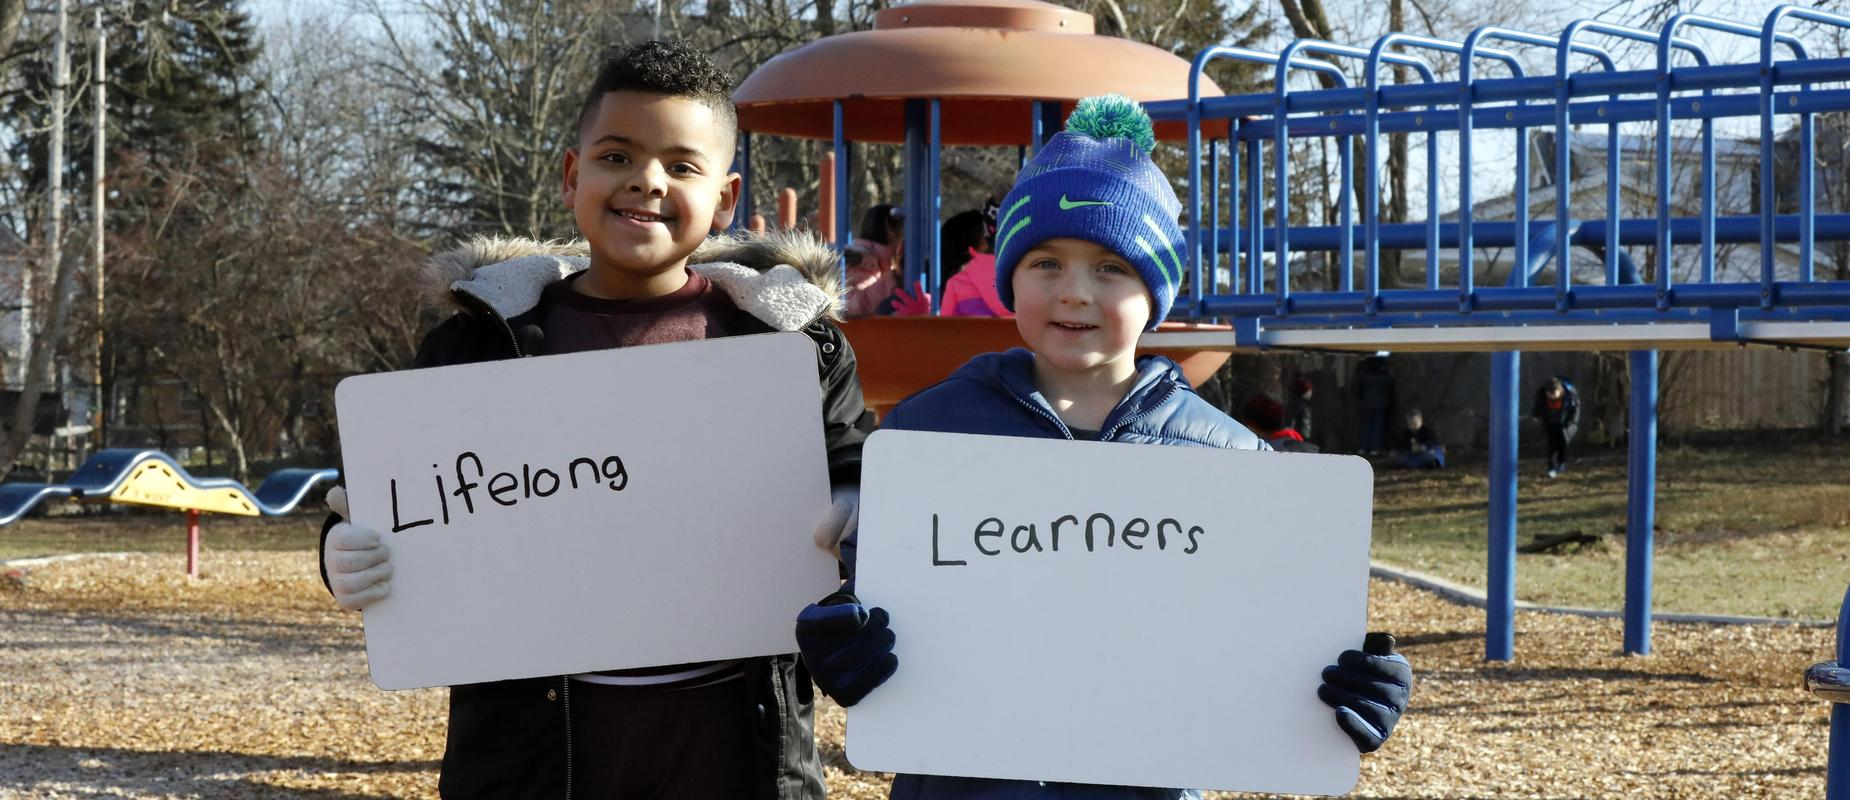 boys pose with lifelong learners sign on playground in their winter gloves and hats and coats